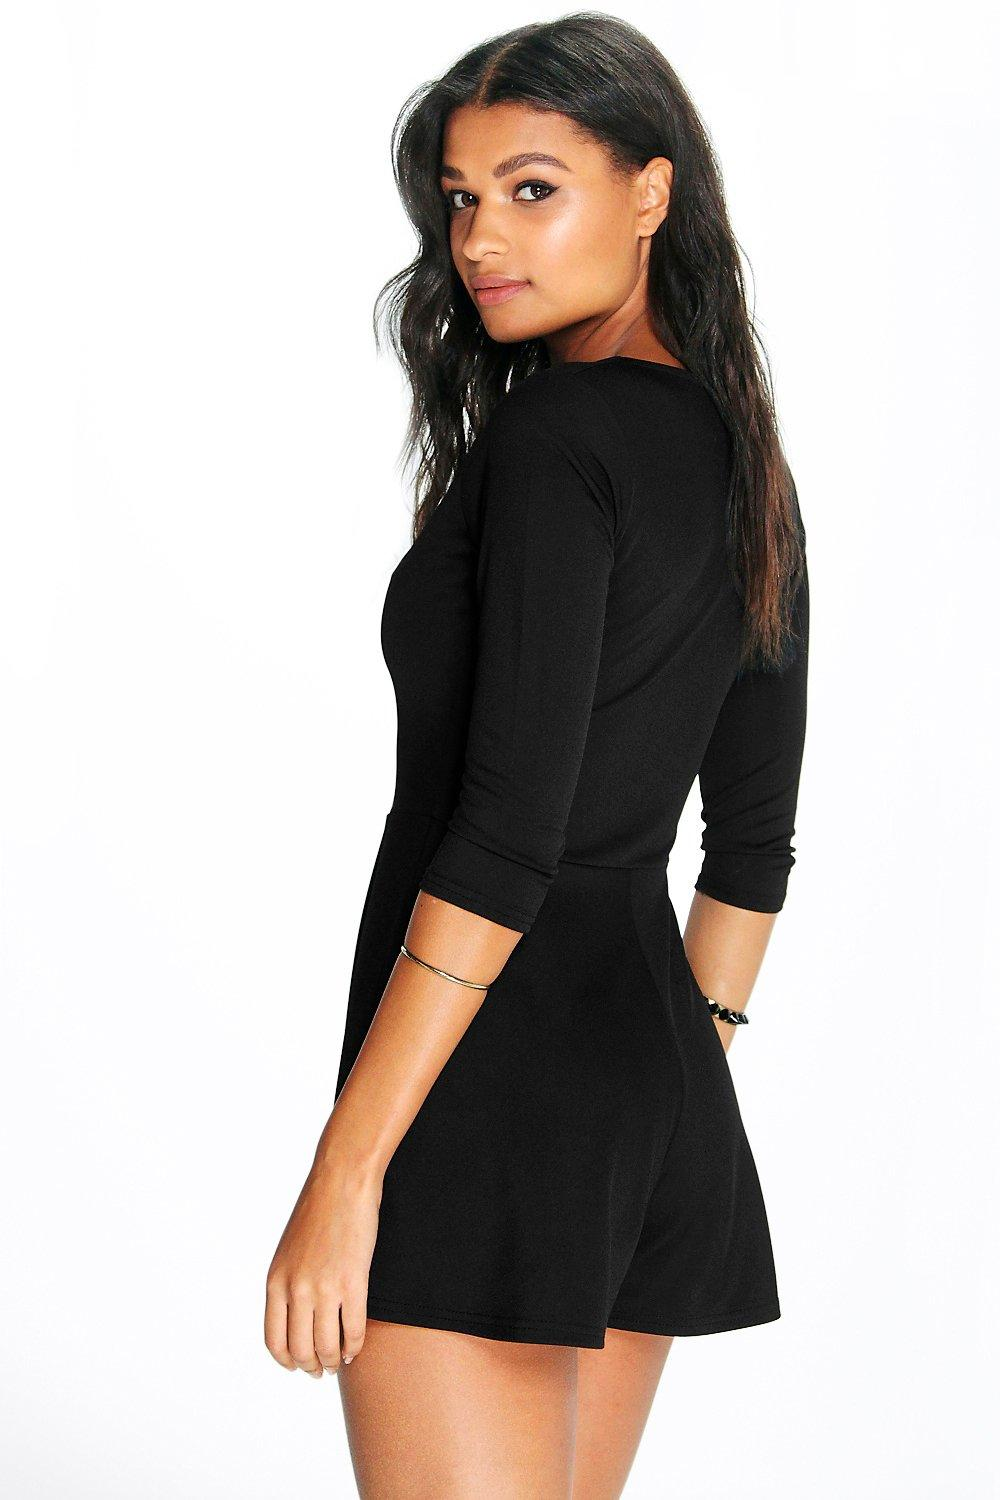 Shop our fab range of jumpsuits and playsuits for women at private-dev.tk Order online now for free next day delivery with click and collect. Shop our fab range of jumpsuits and playsuits for women at private-dev.tk Order online now for free next day delivery with click and collect.